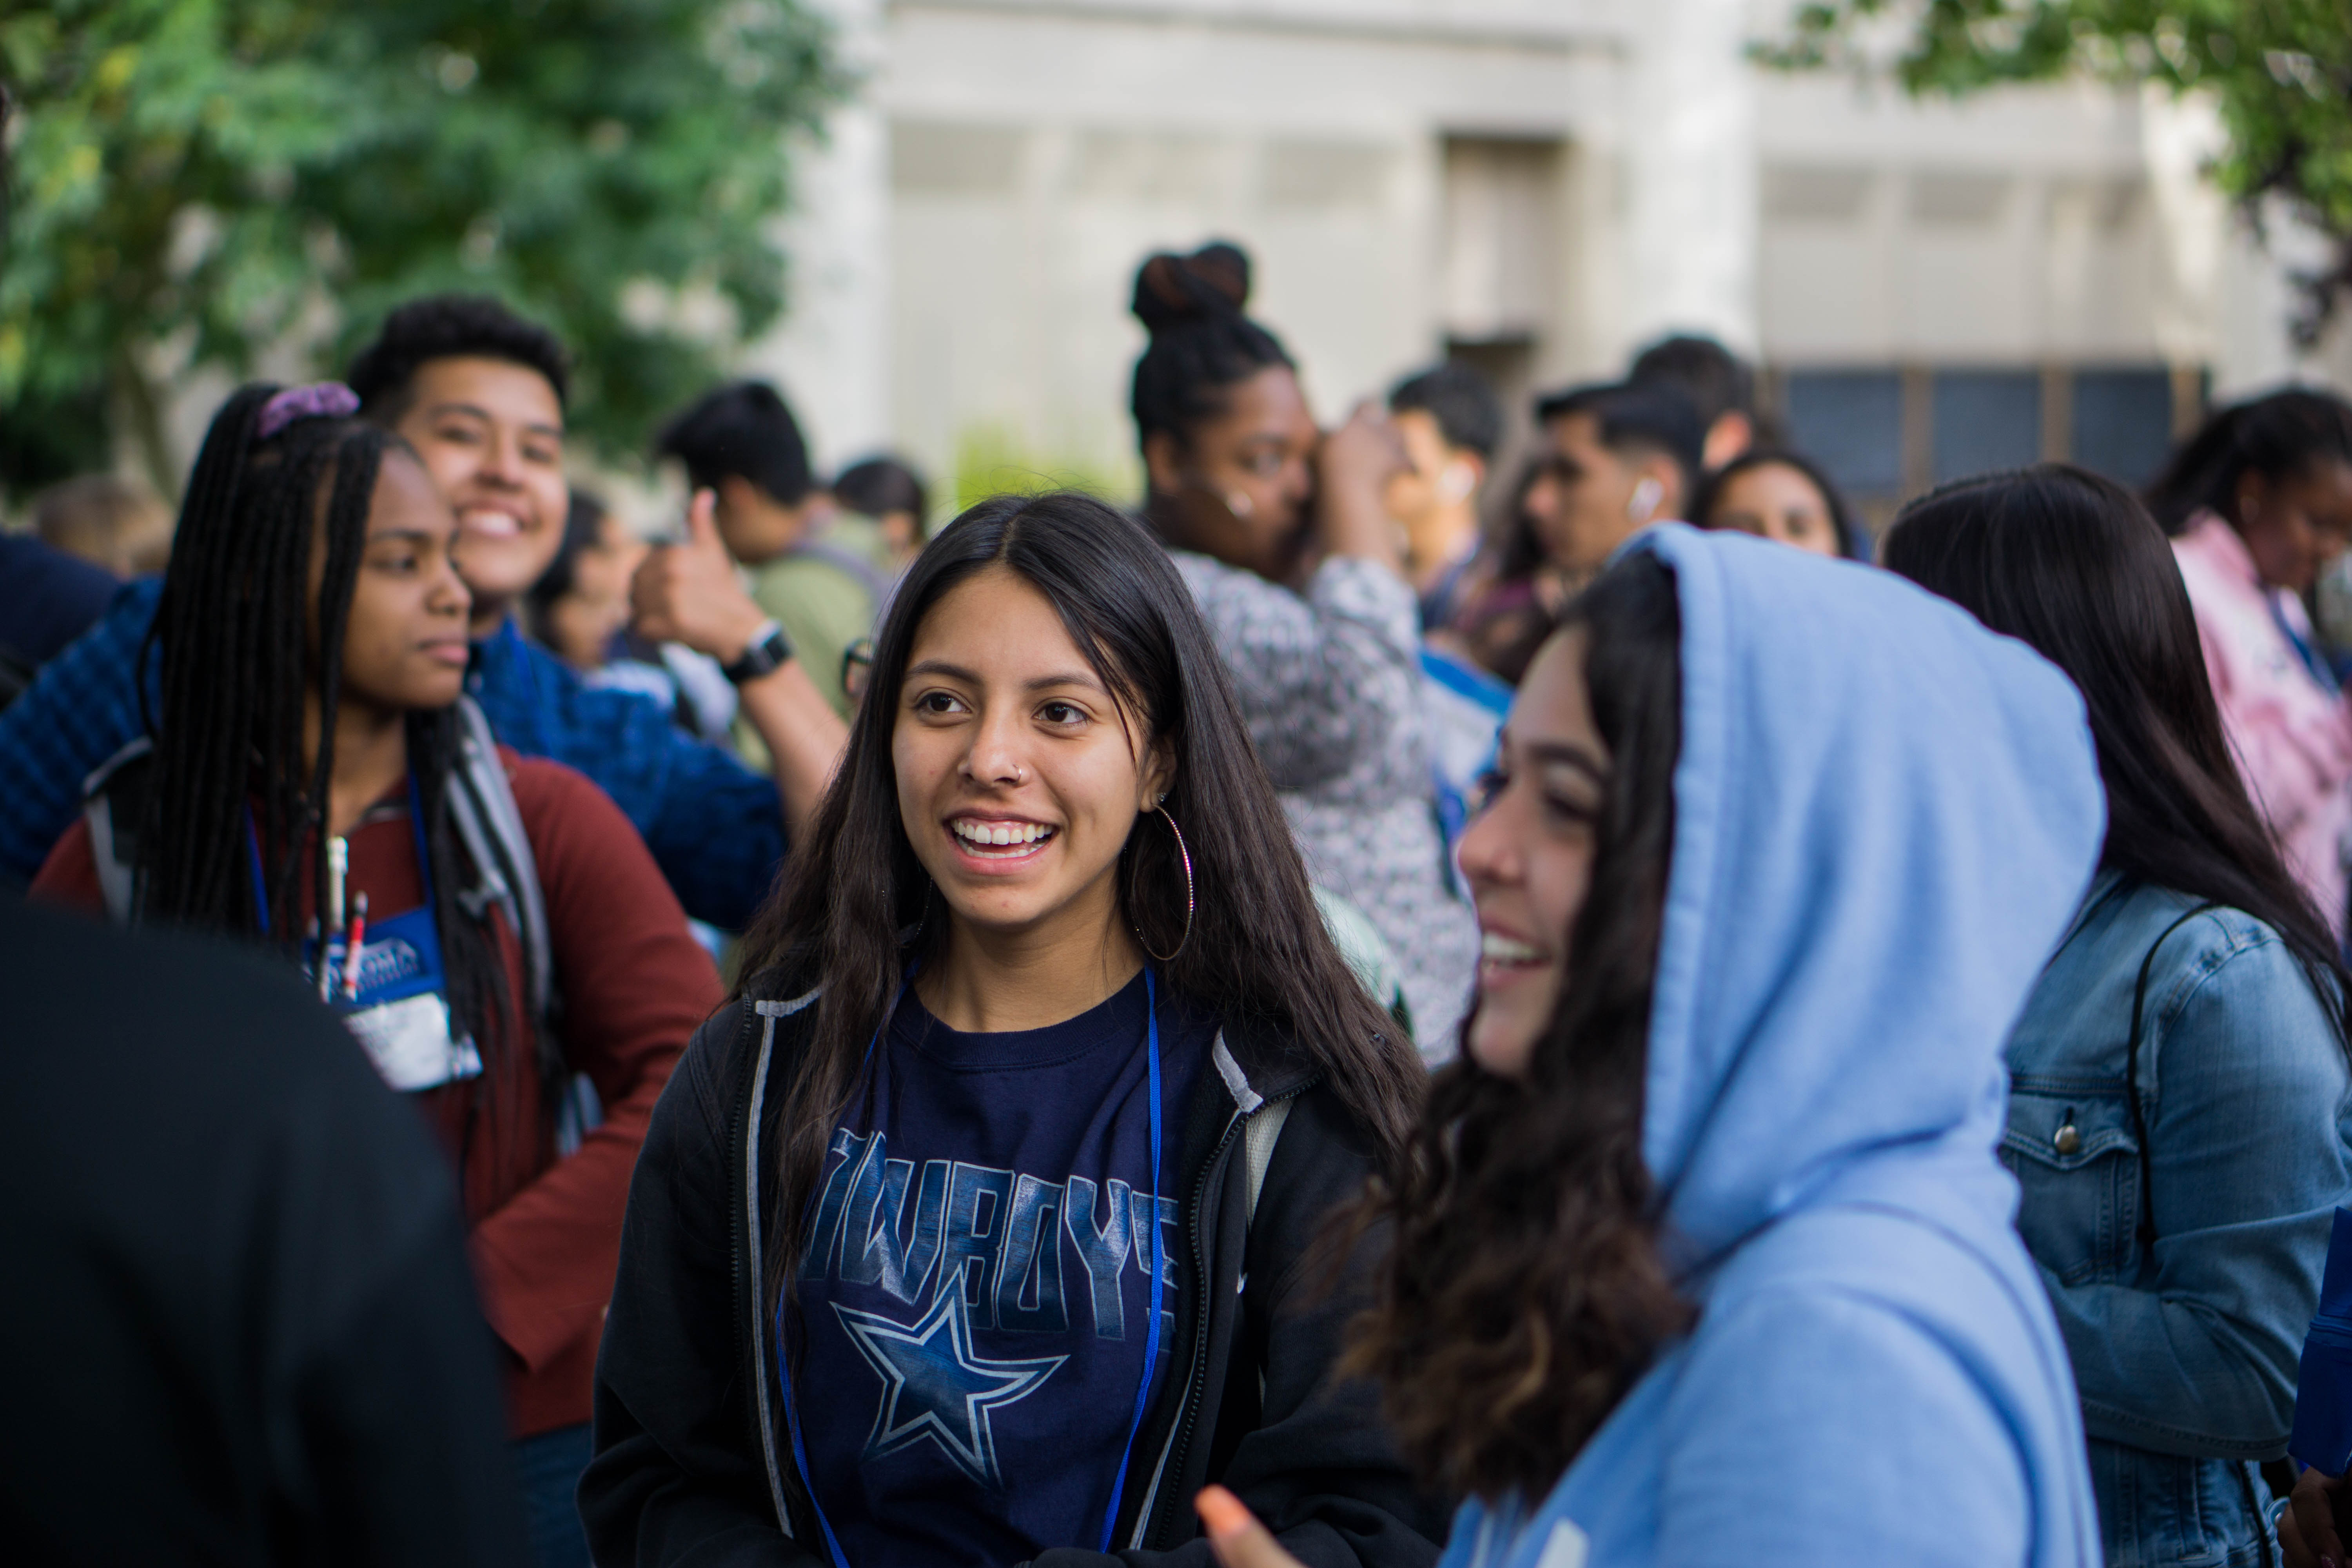 Students on campus, smiling